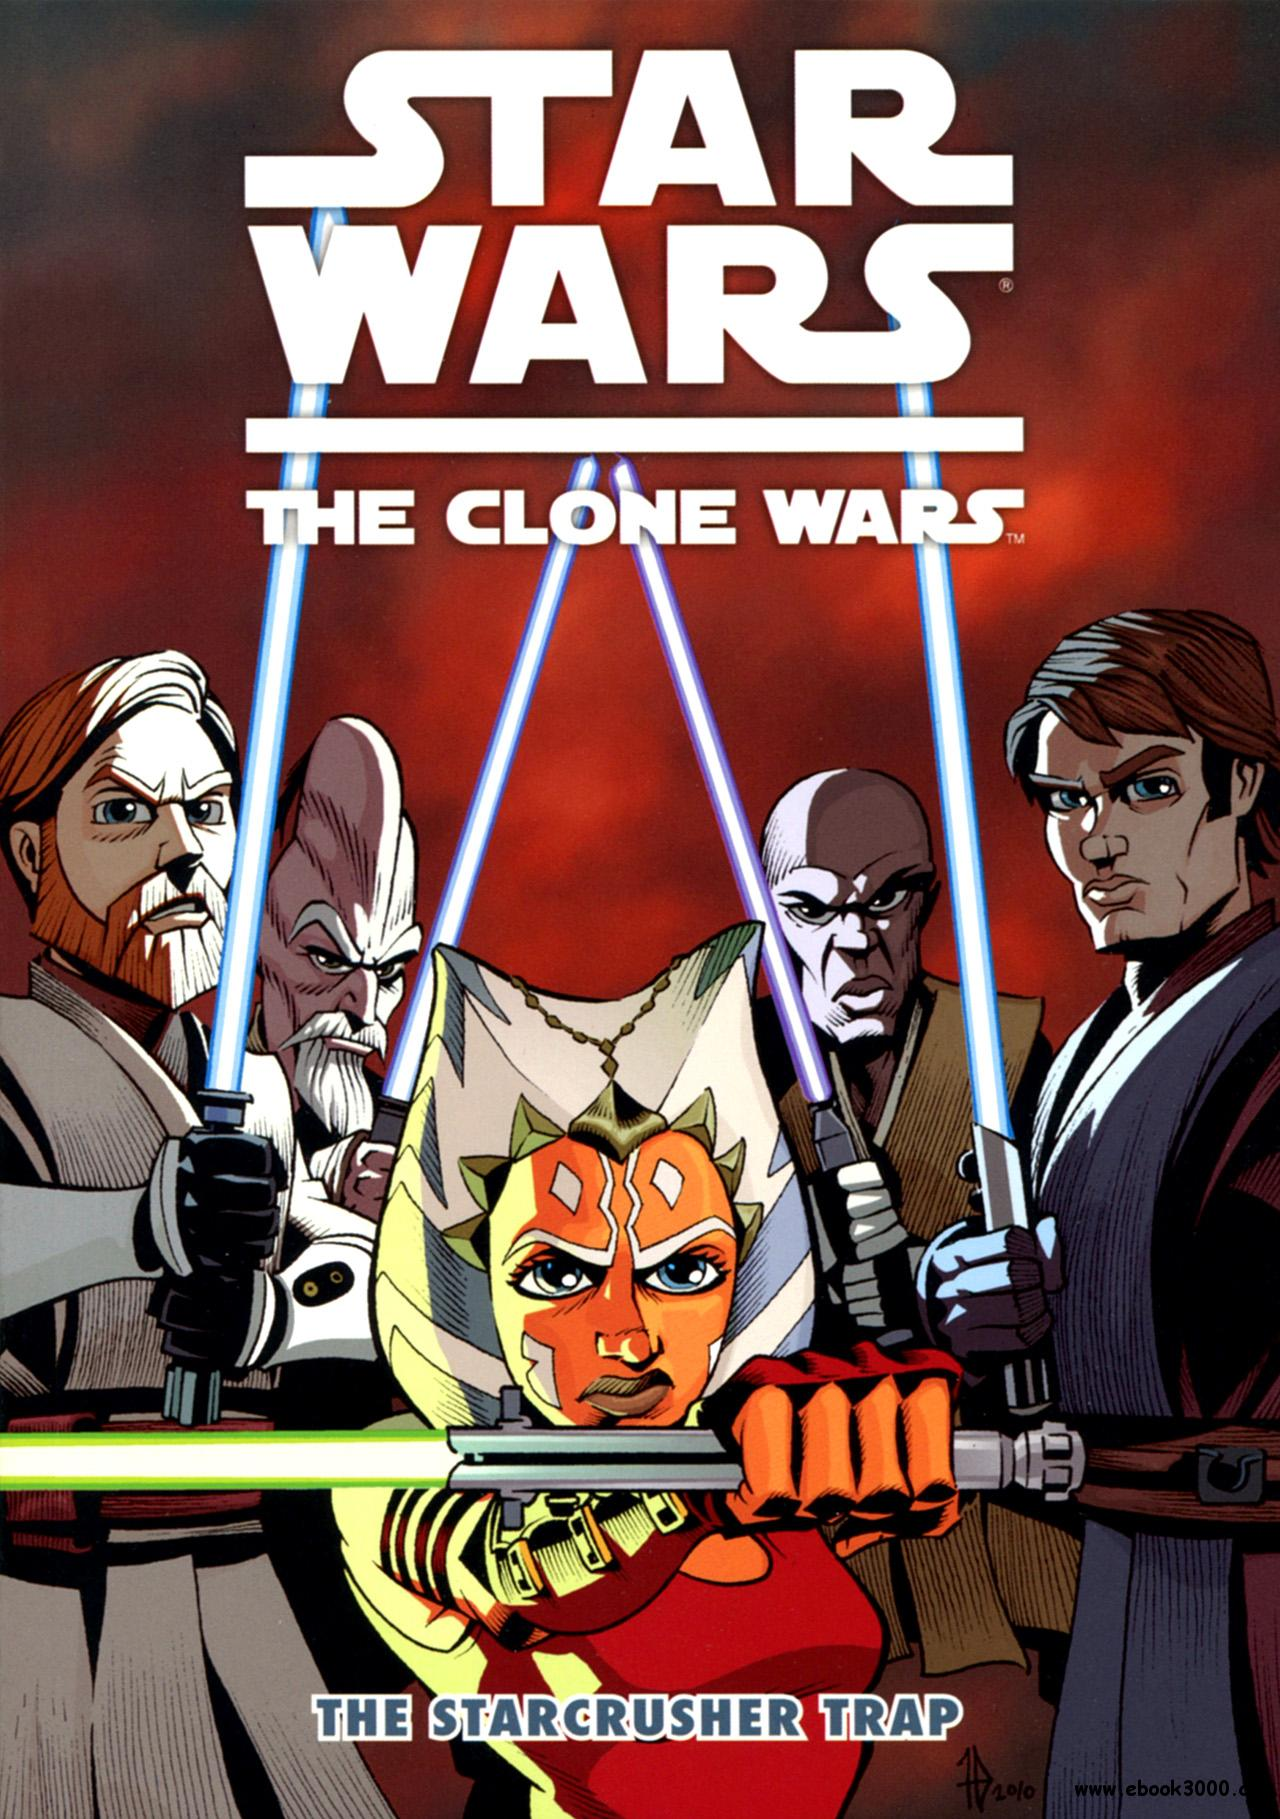 Star Wars: The Clone Wars - The Starcrusher Trap (2011) free download